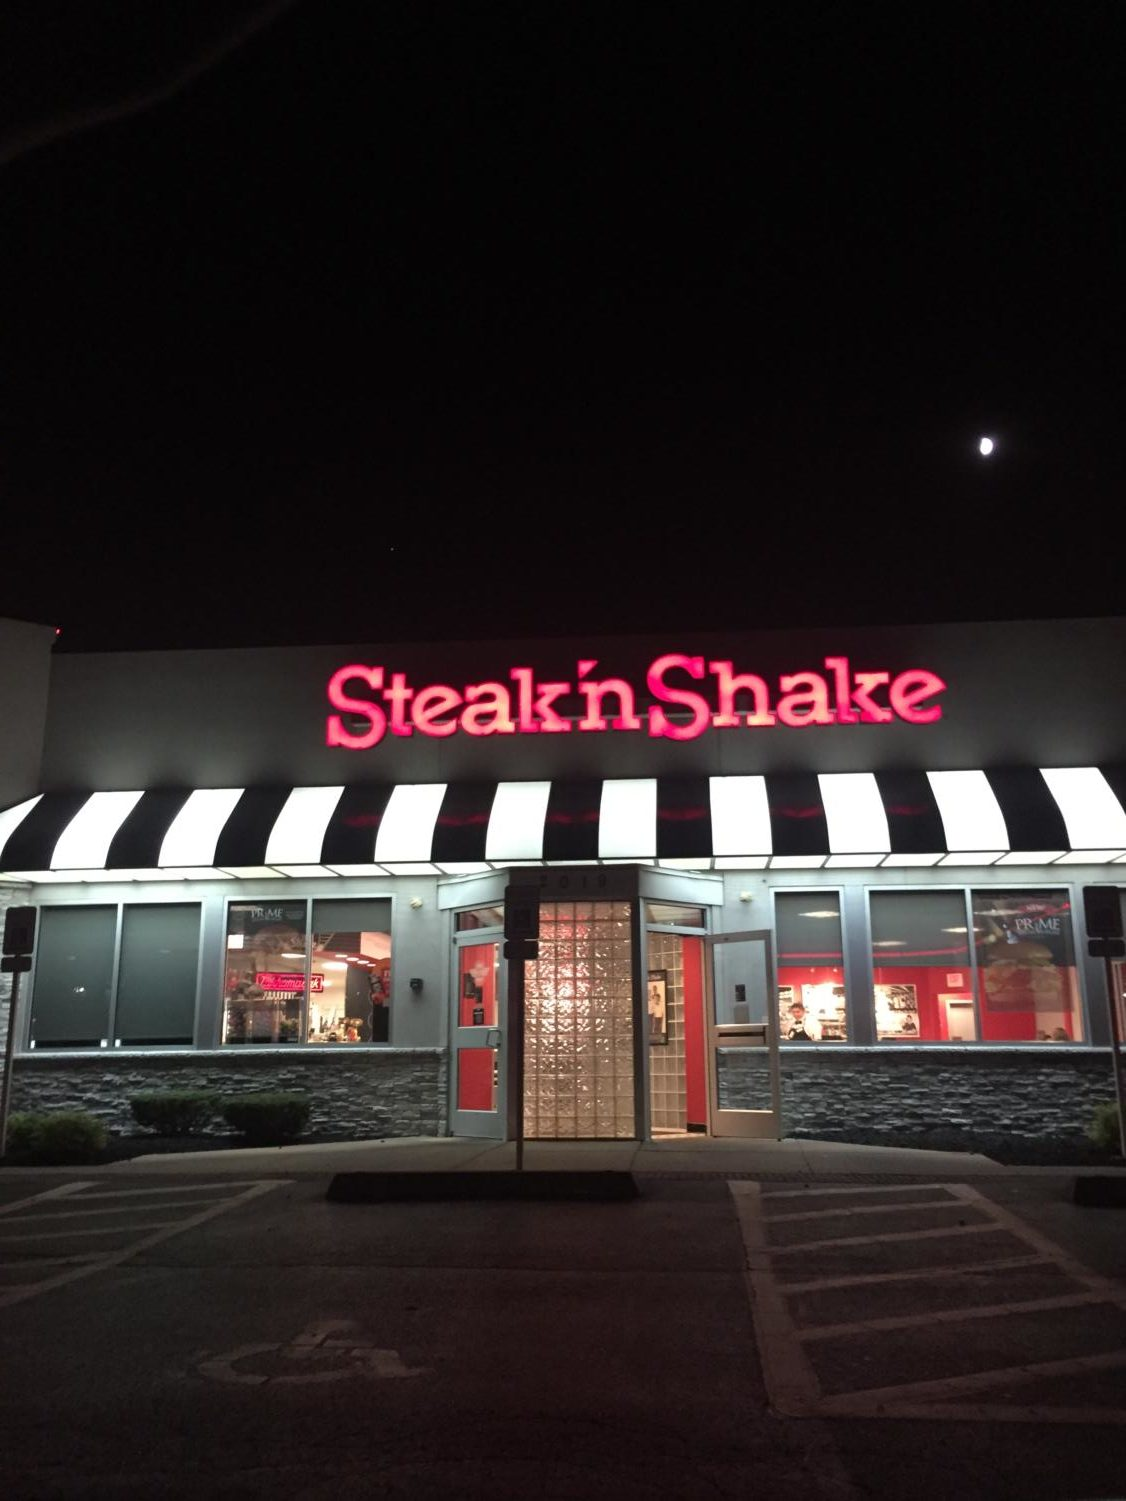 Late night out at a Steak & Shake.